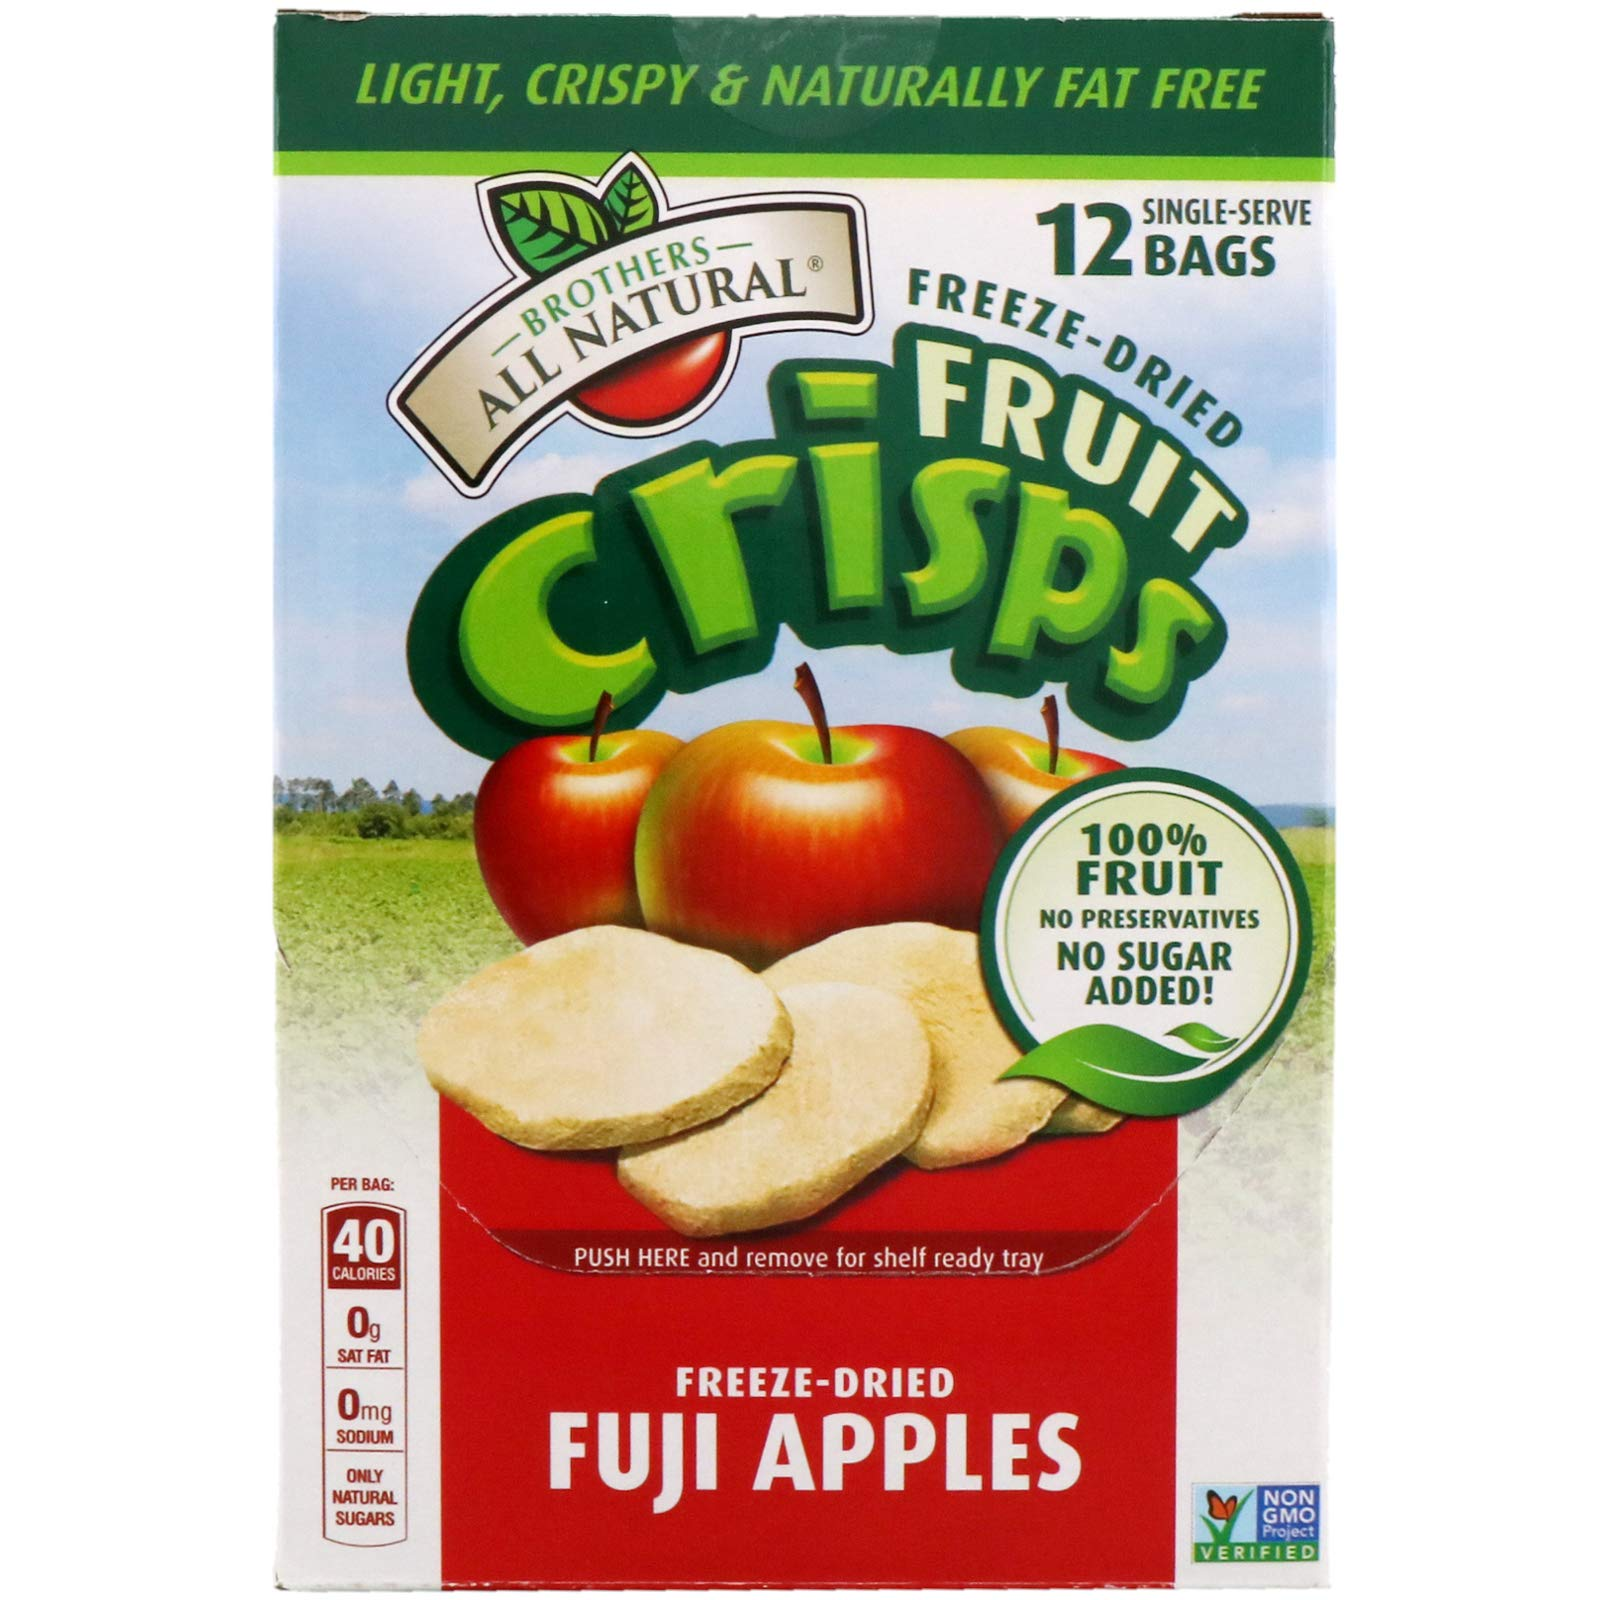 BROTHERS ALL NATURAL All Apple C's Fruit Crisps, 0.35 Ounce (Pack of 12) by BROTHERS ALL NATURAL